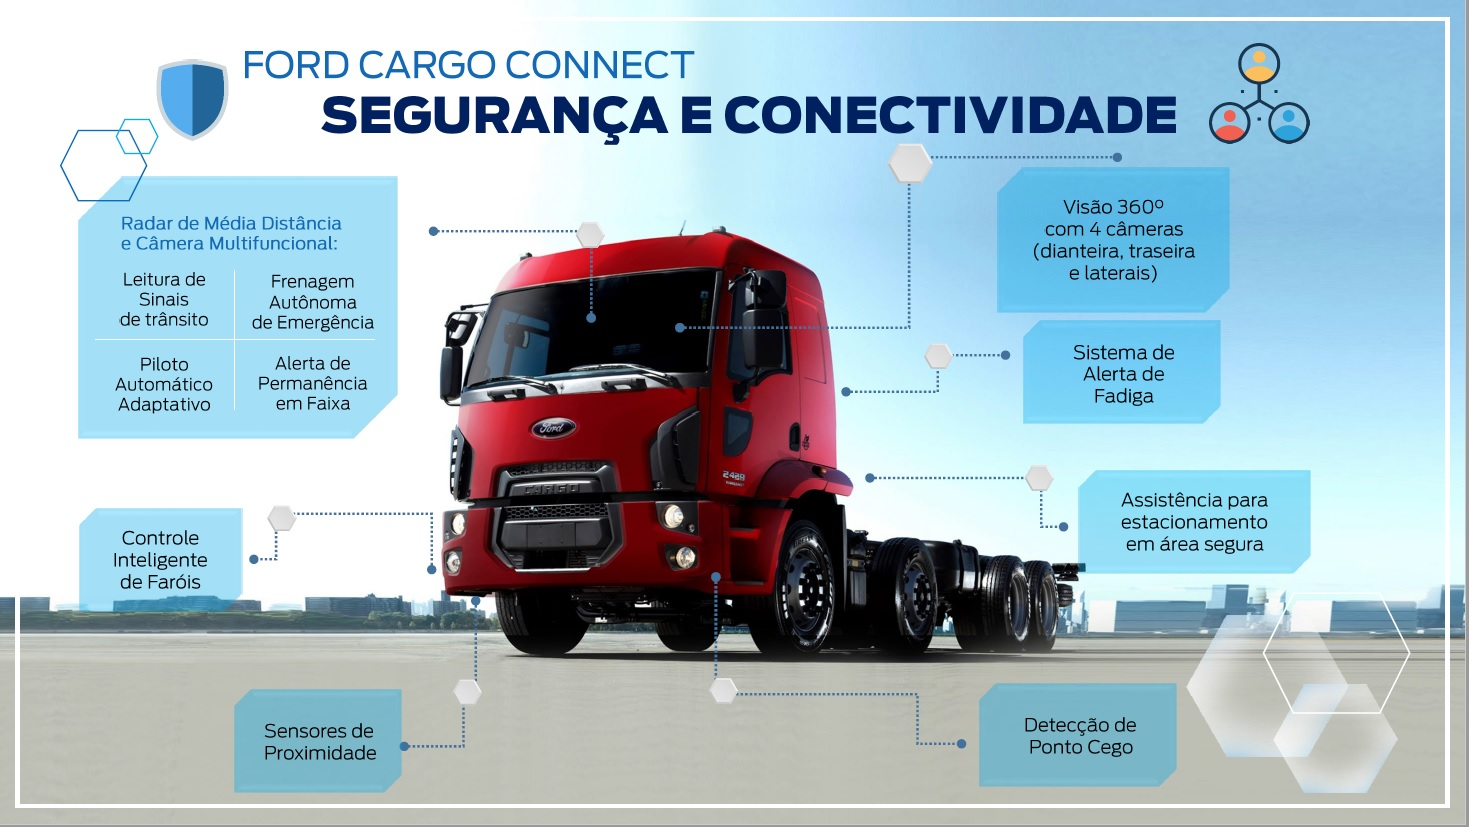 Ford Cargo Connect Fenatran 2018